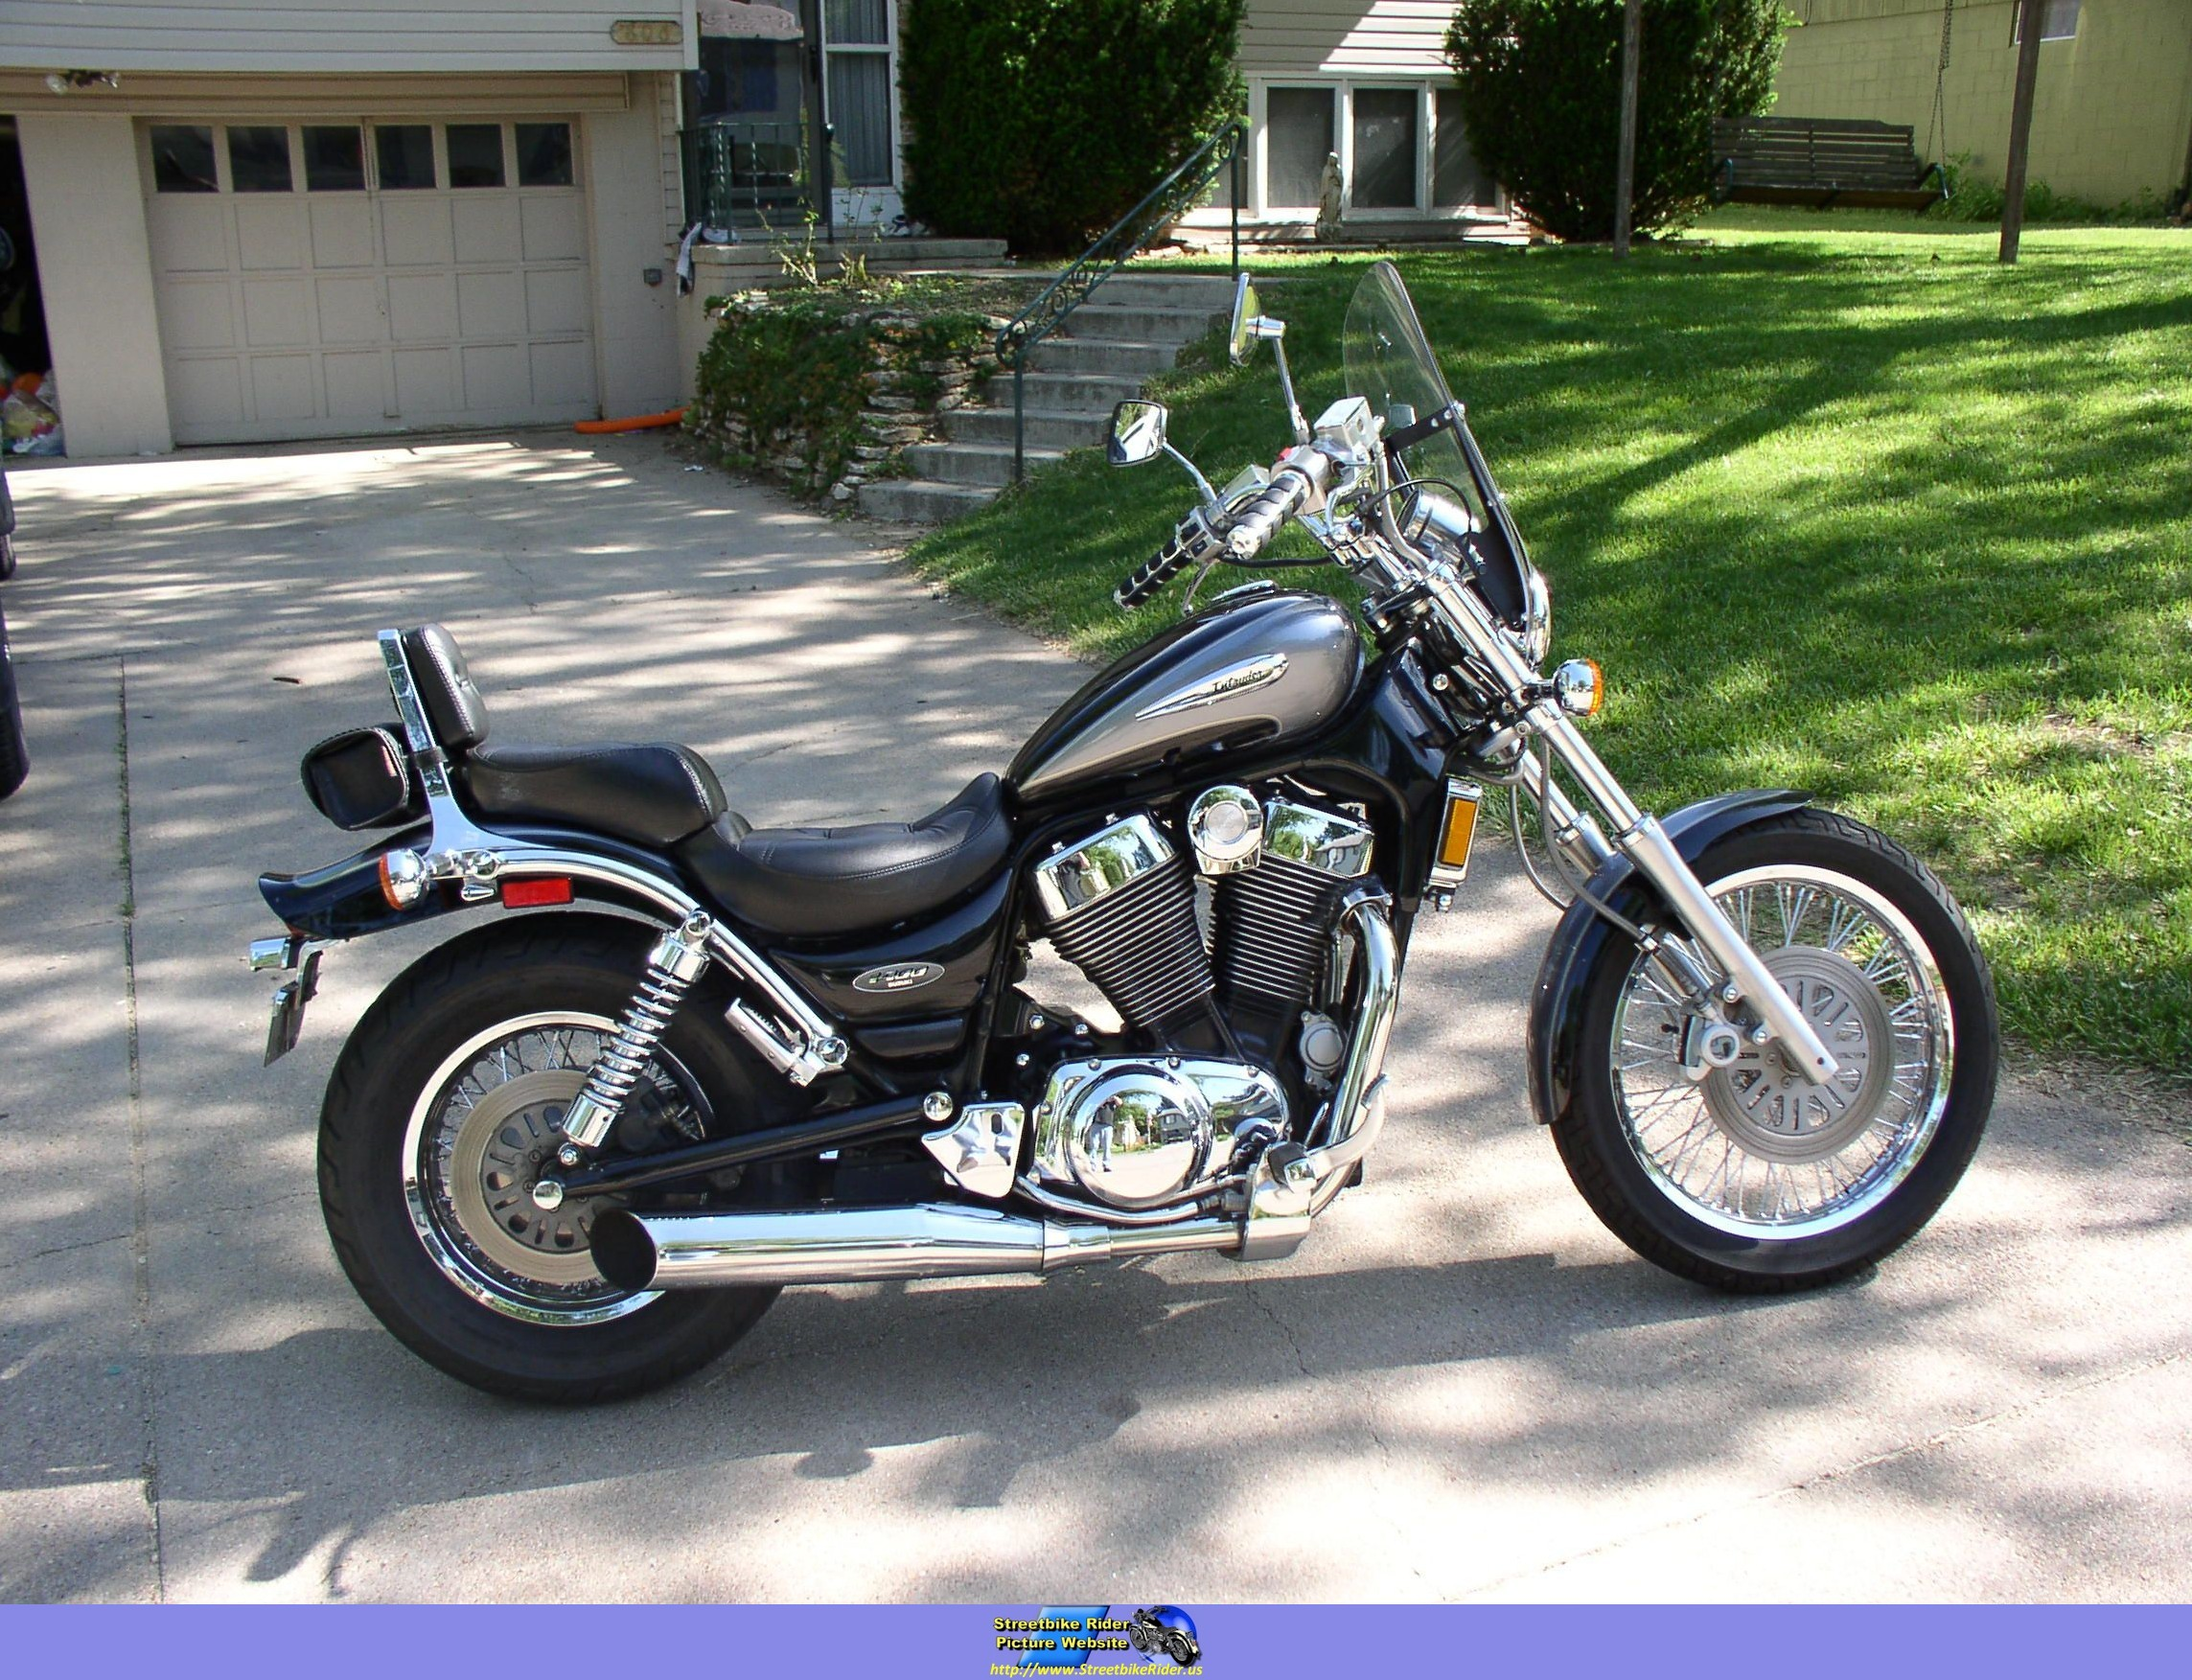 2003 suzuki vs 1400 glp intruder moto zombdrive com. Black Bedroom Furniture Sets. Home Design Ideas